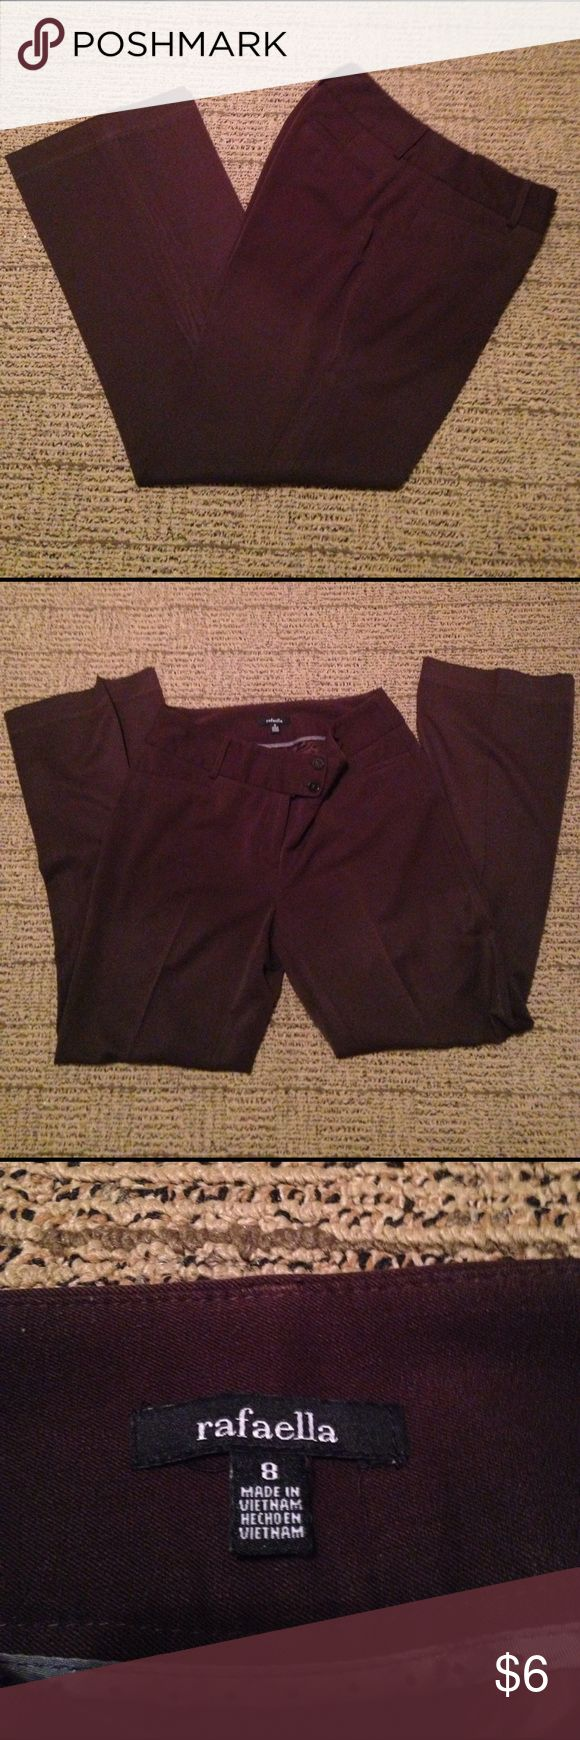 Curvy fit dress pants. EUC. Rafaella Curvy fit dress pants. Size 8. Chocolate brown Rafaella Pants Trousers